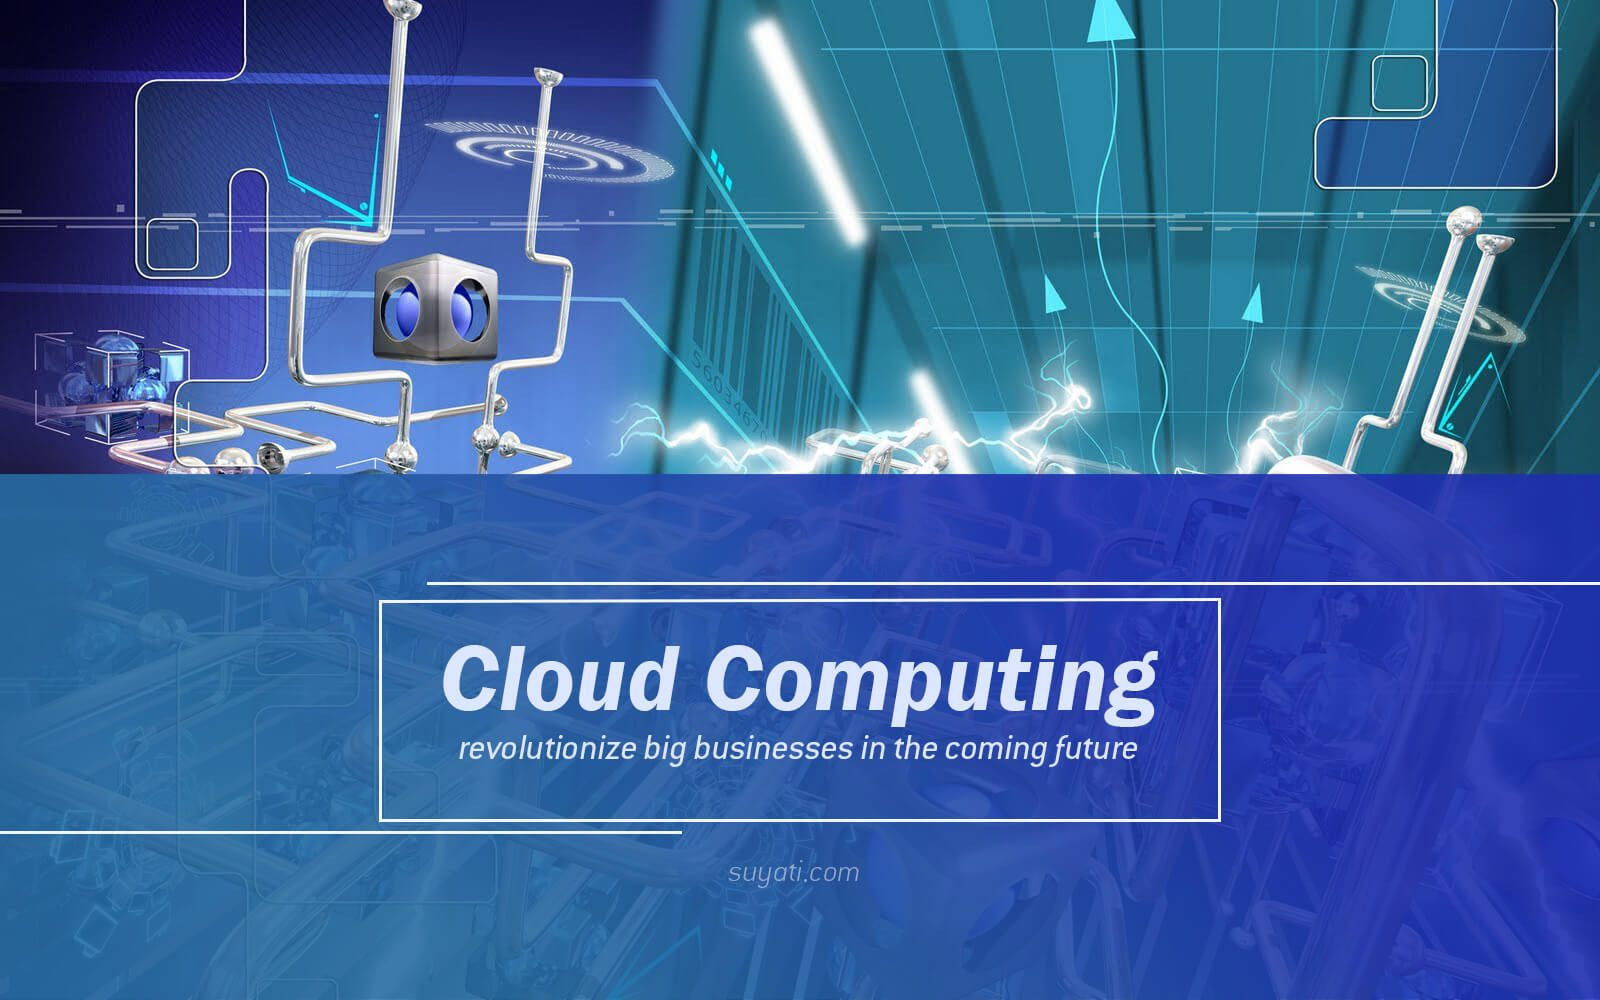 Cloud Computing-revolutionizing big businesses in the coming future (1)